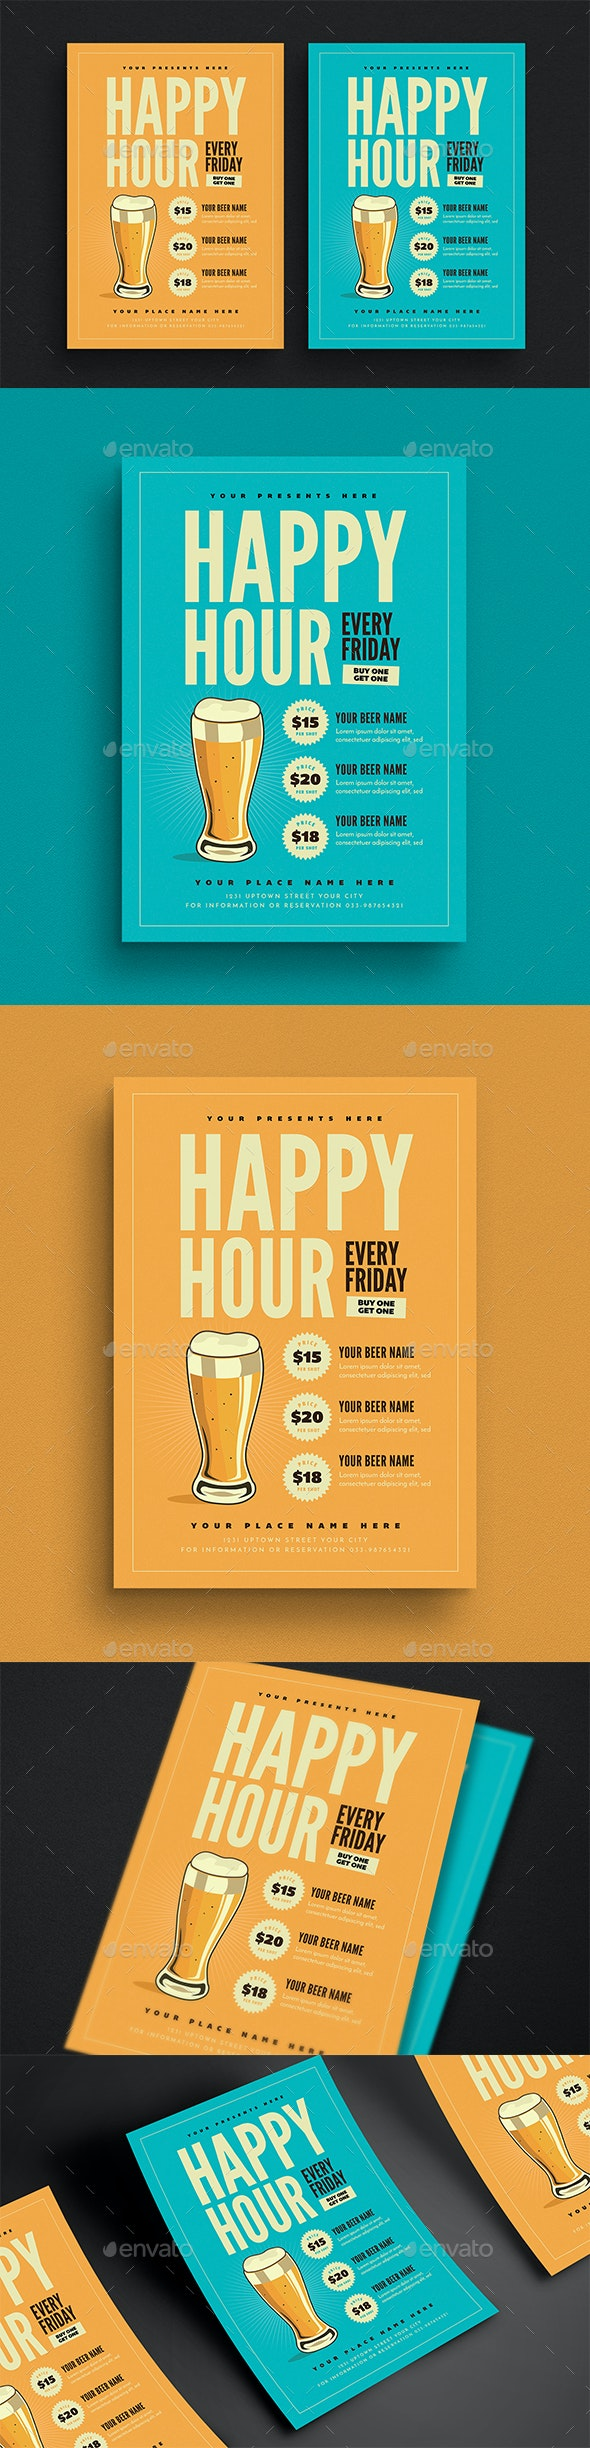 Happy Hour Beer Promotion Flyer - Flyers Print Templates